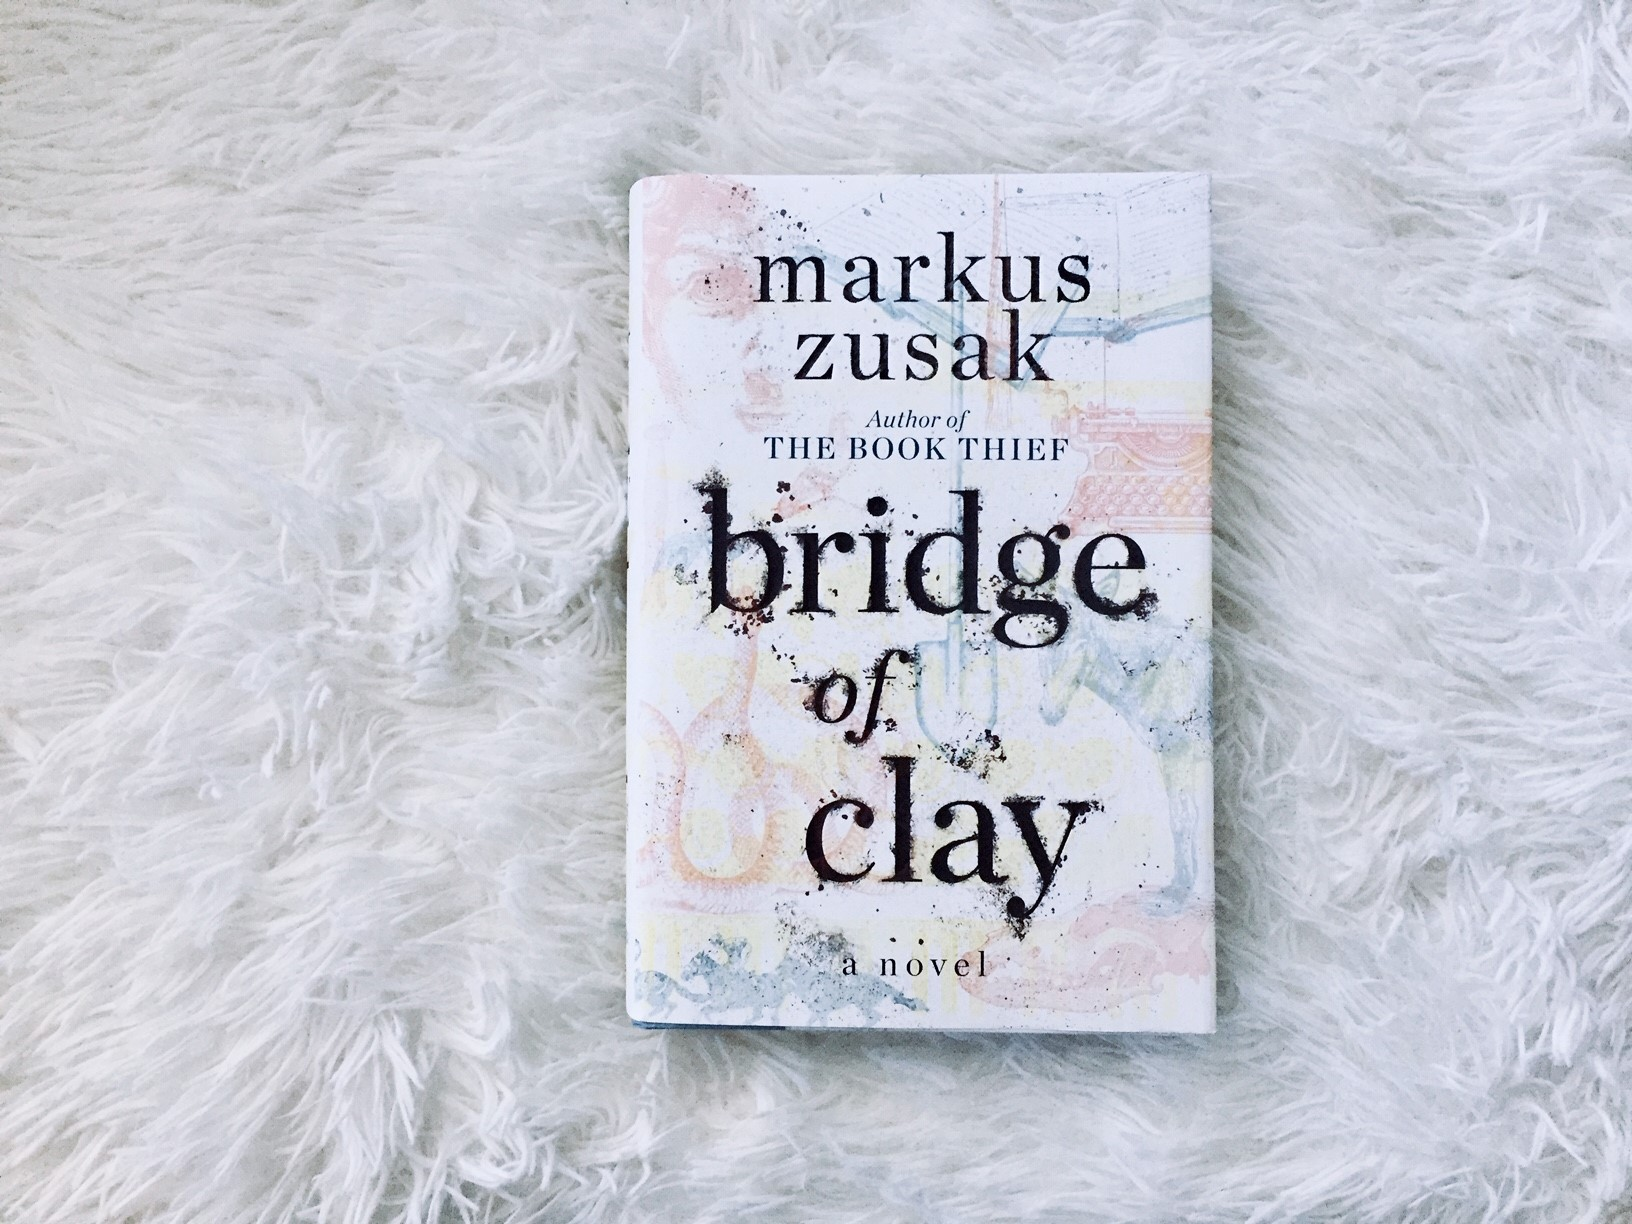 bridge-of-clay-zusak-1